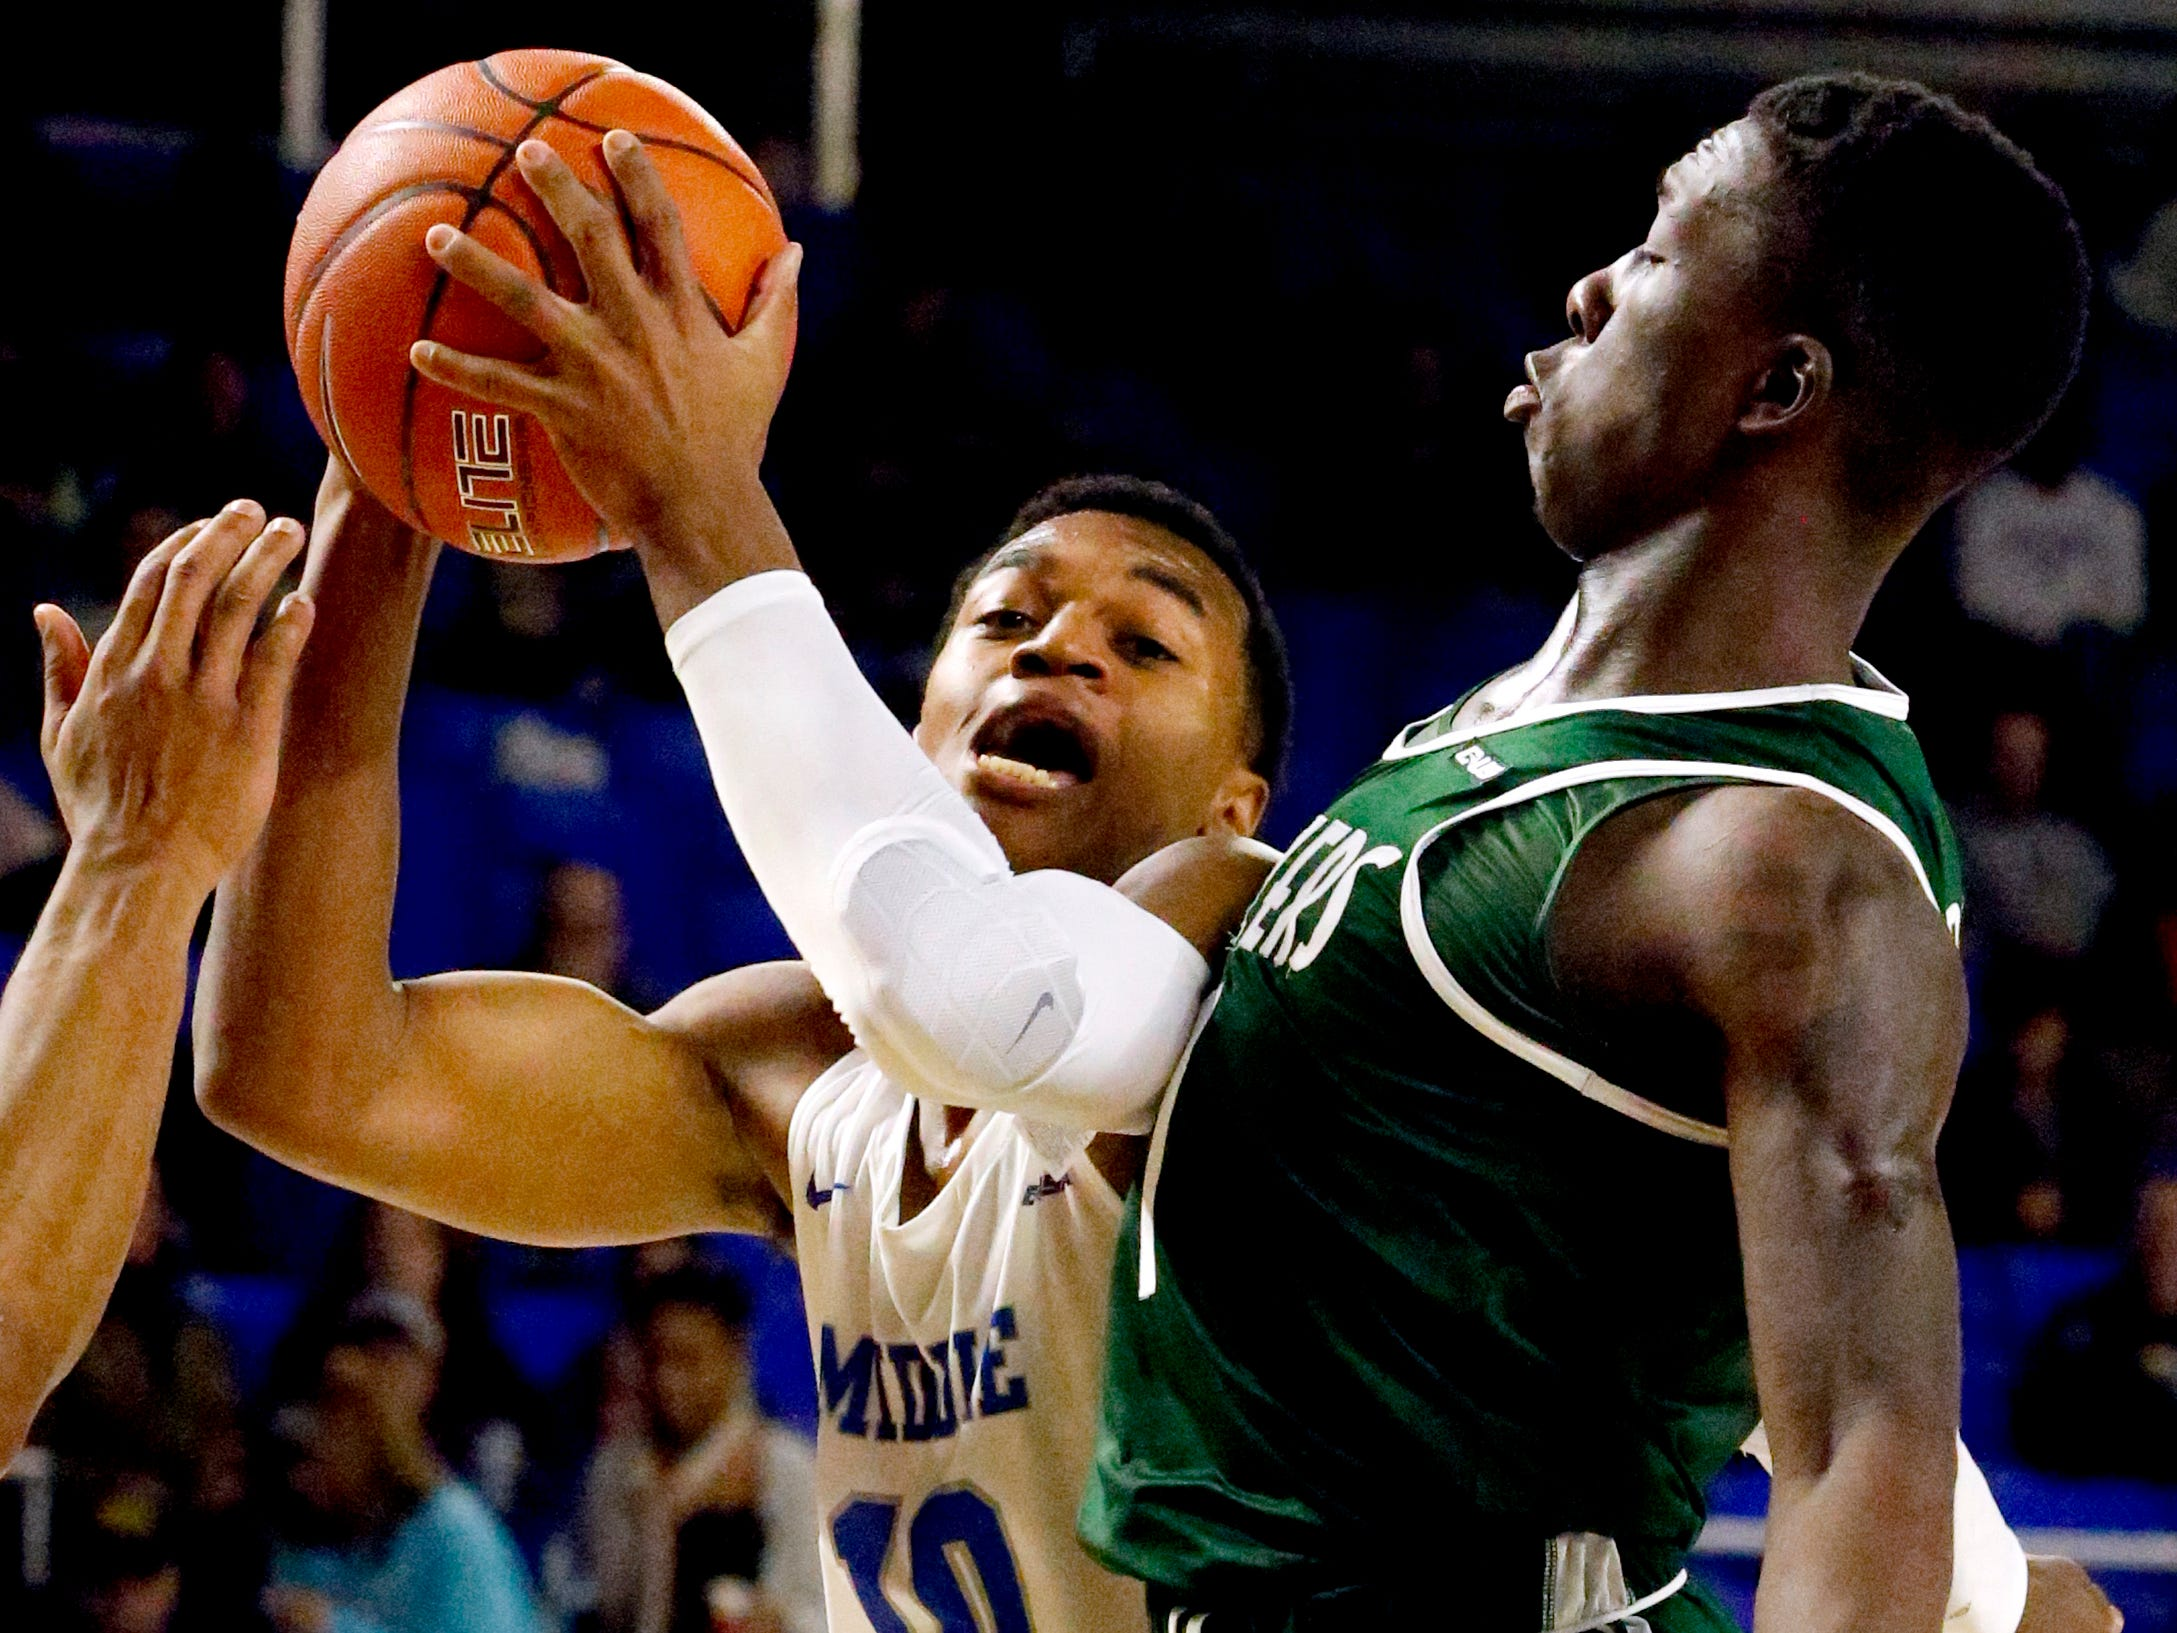 MTSU guard Jayce Johnson (10) goes up for a shot as UAB's guard Zack Bryant (1) guards him on Wednesday Jan. 30, 2019.